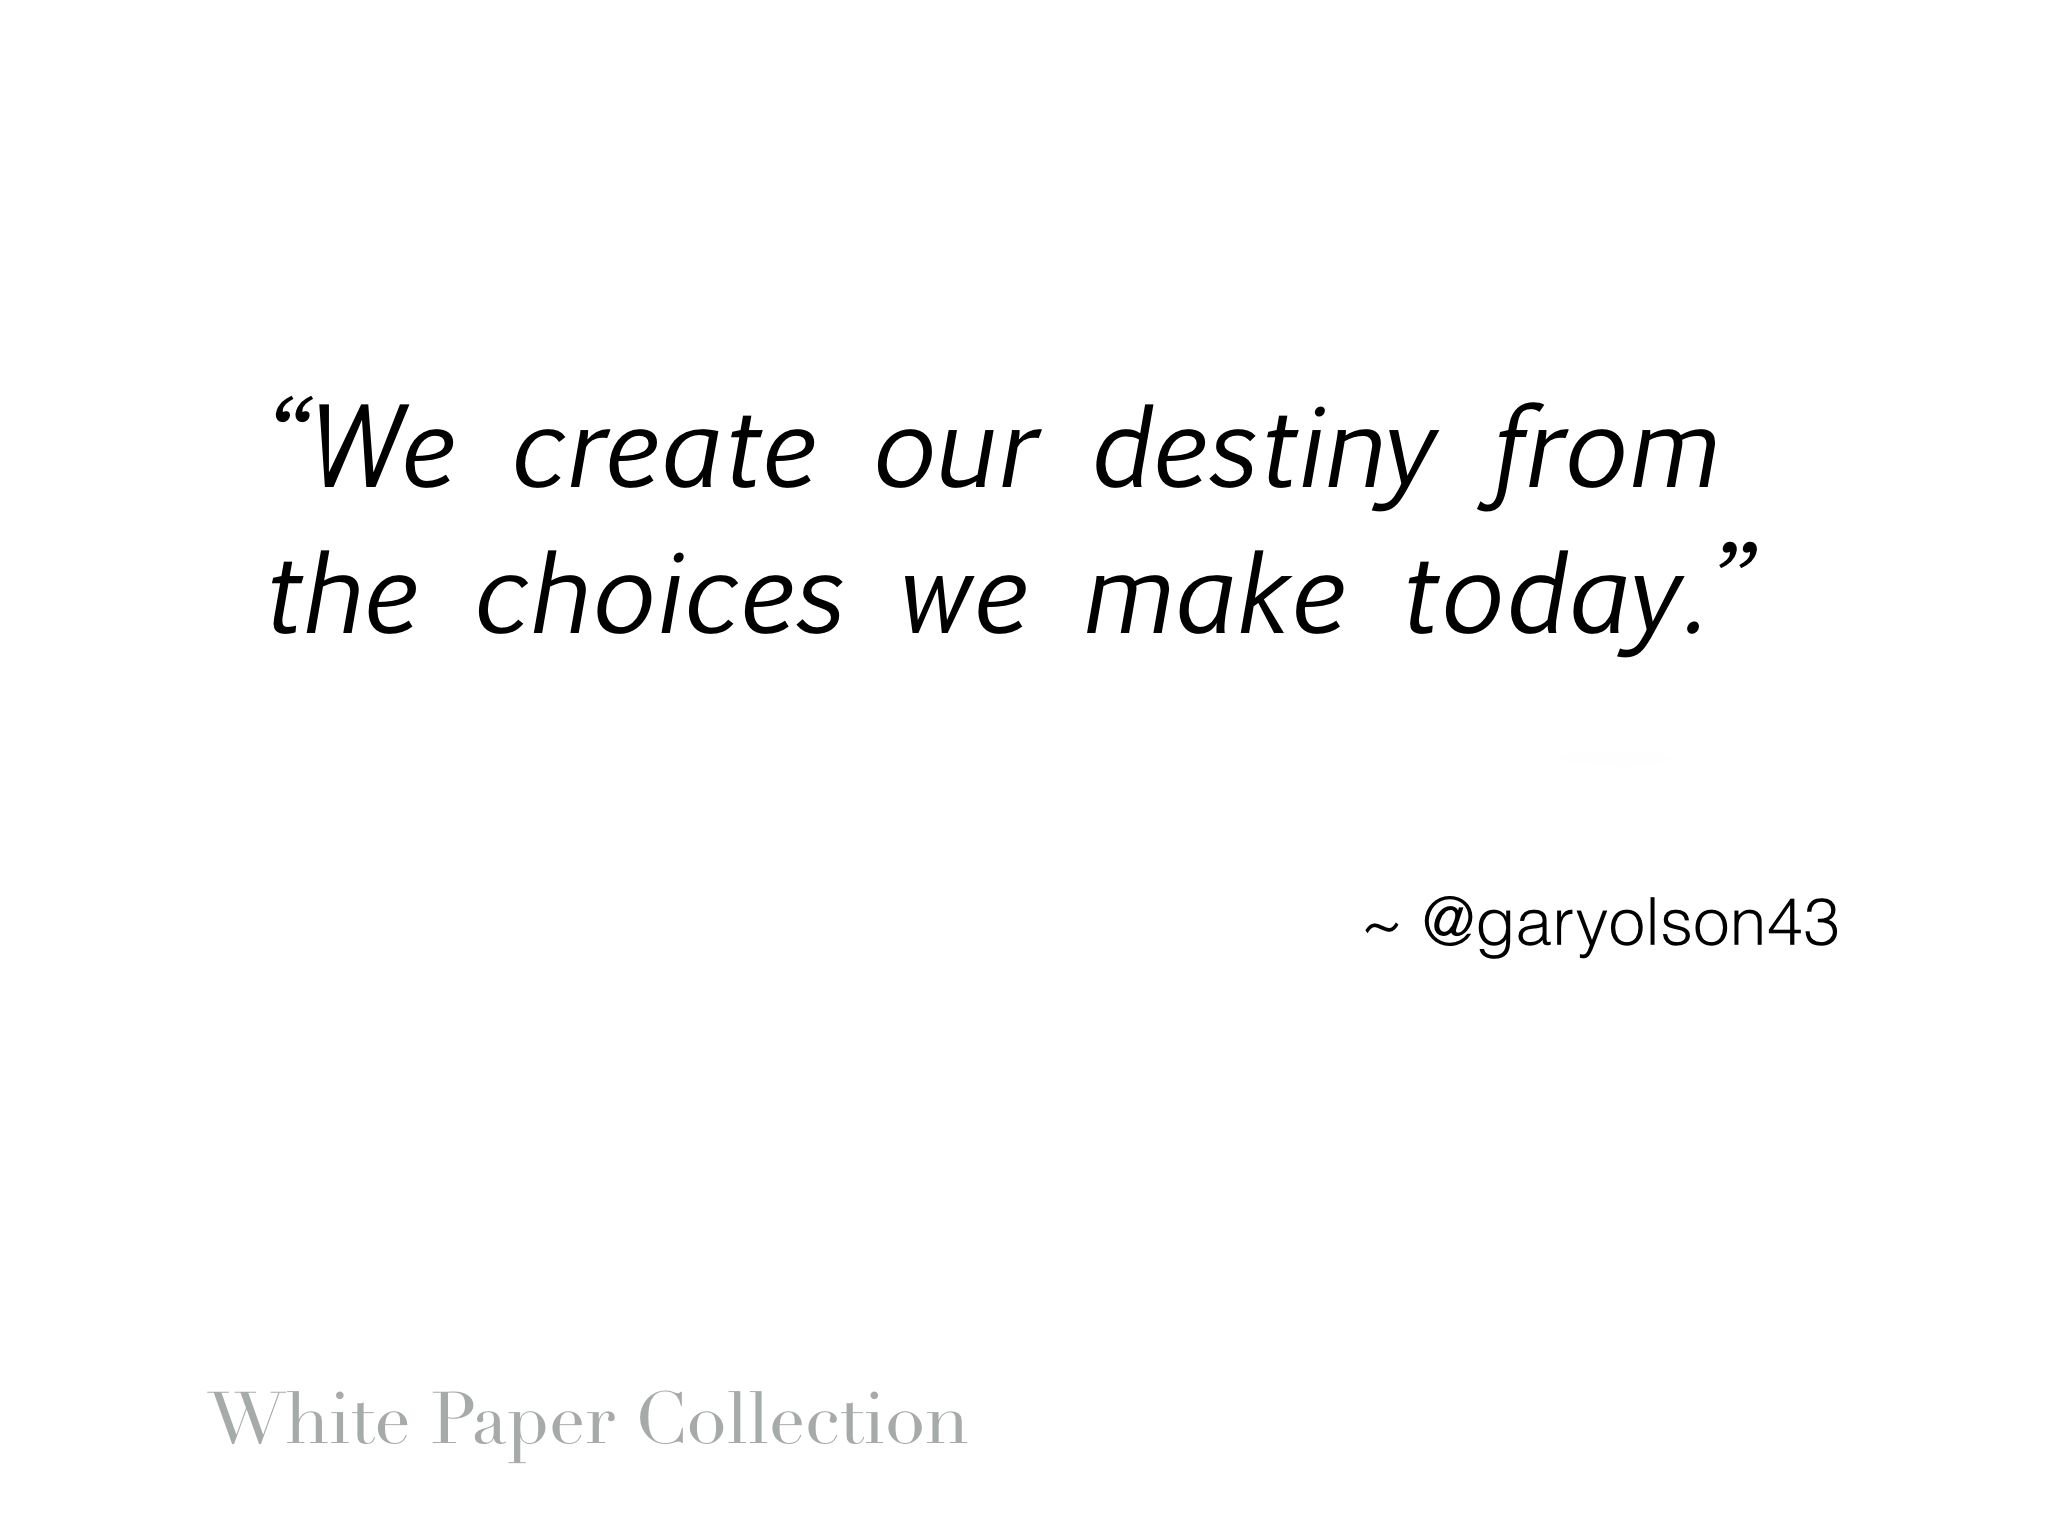 We create our destiny from the choices we make today. #inspirationalquote